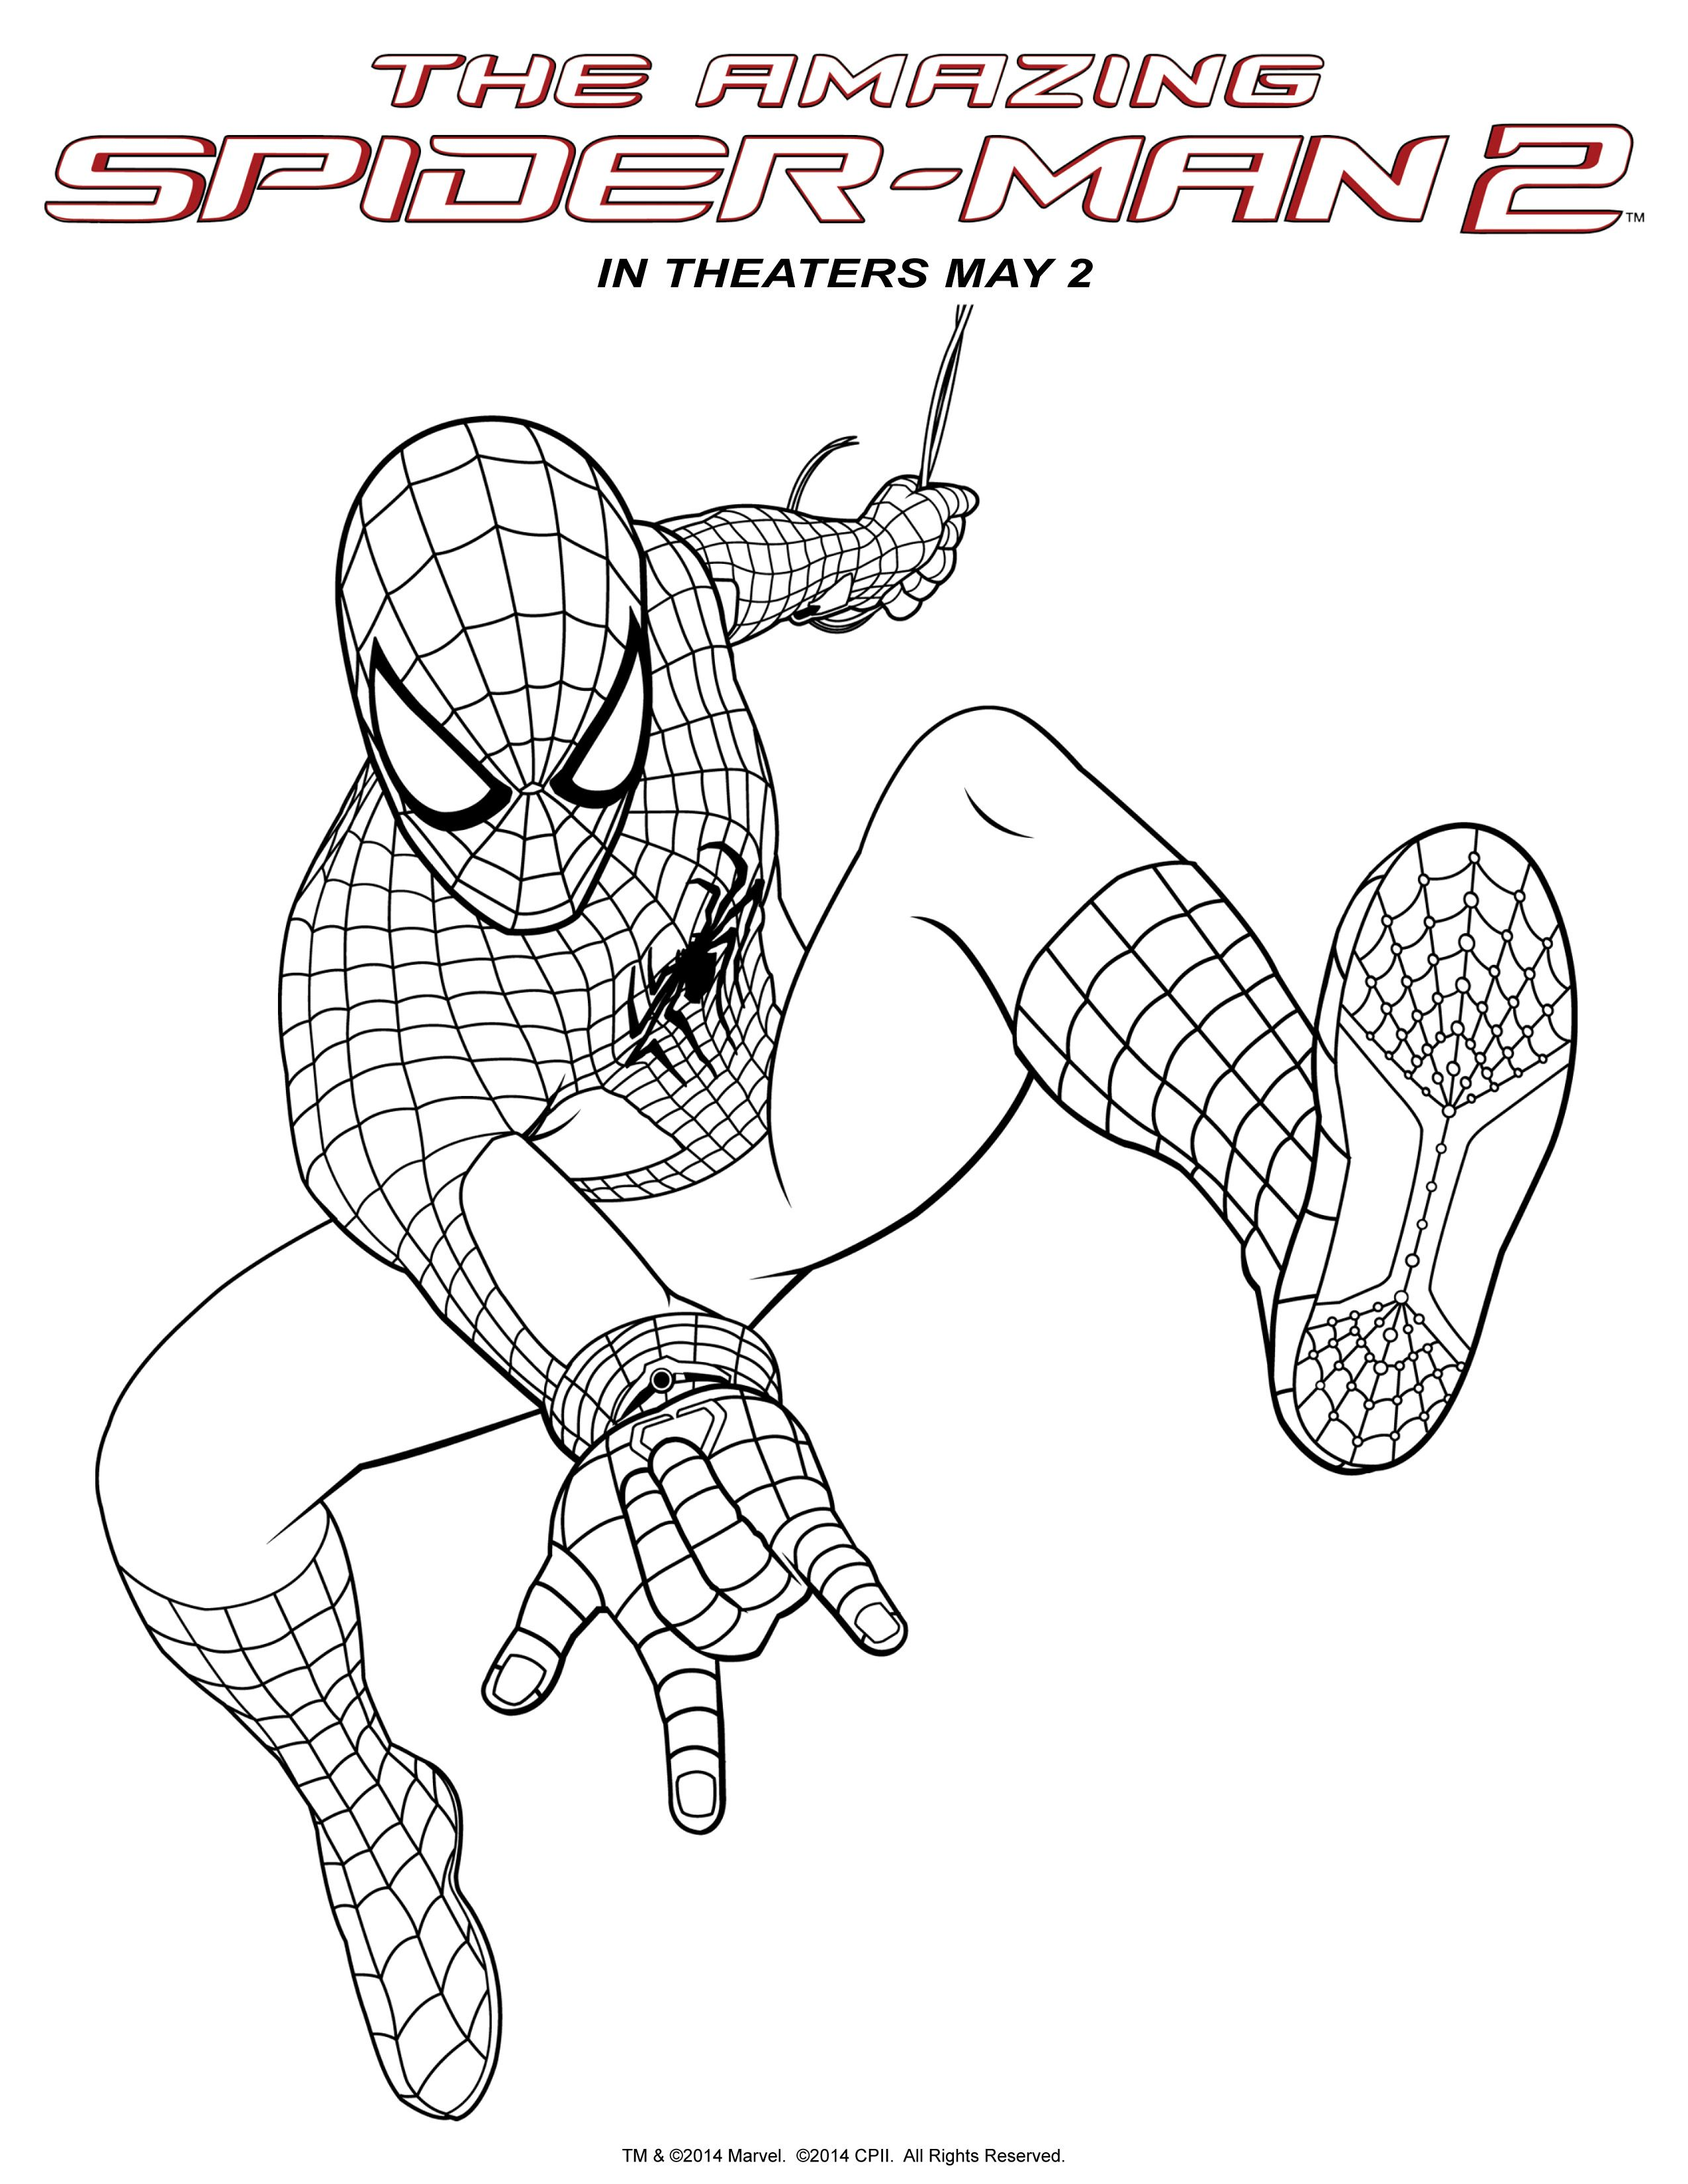 Spider-Man 24  Spiderman coloring, Spider coloring page, Avengers